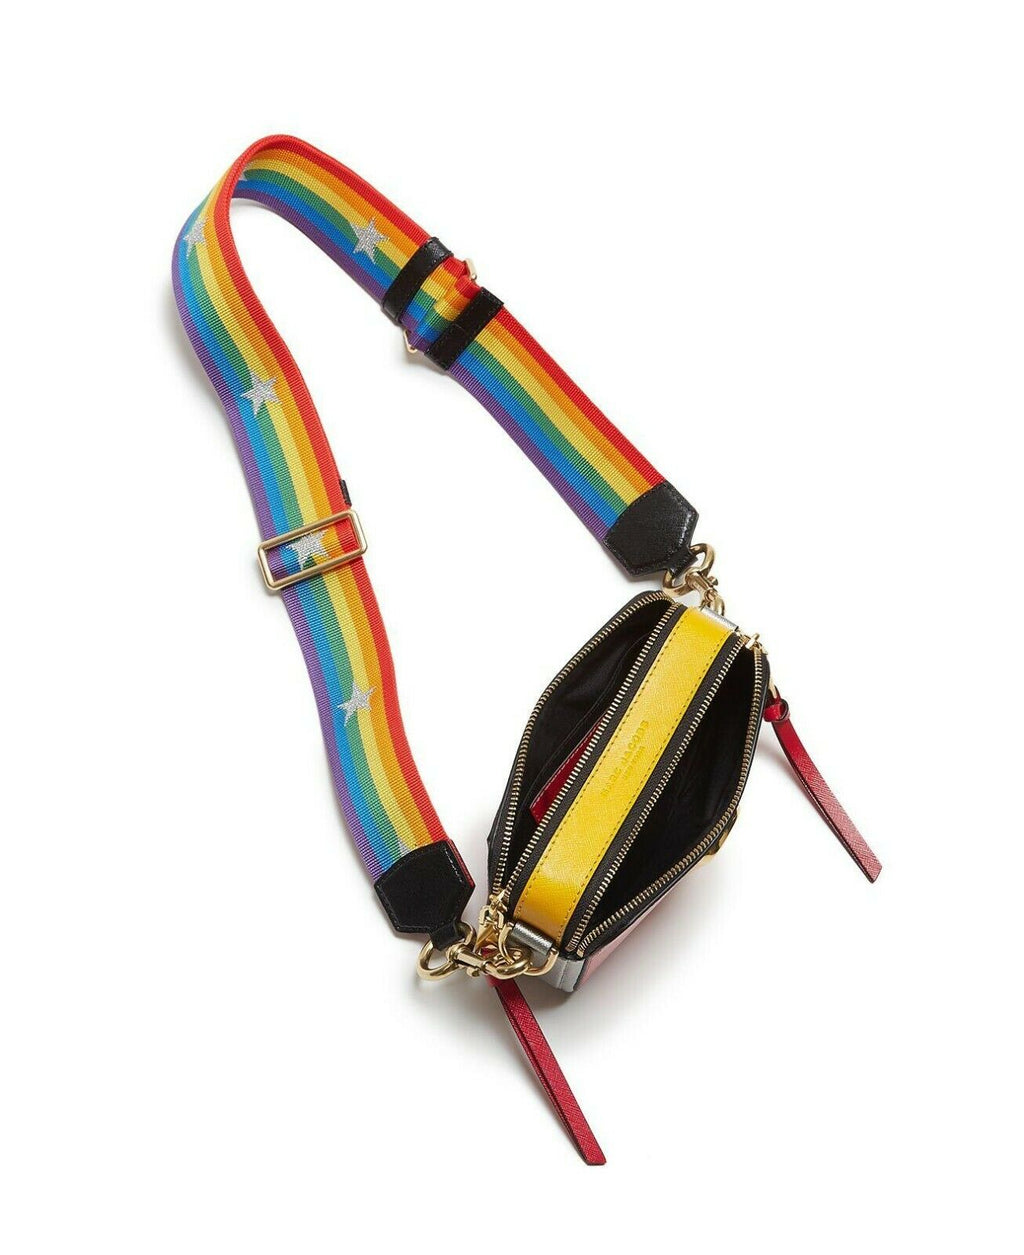 Marc Jacobs Snapshot Rainbow Strap Camera Bag